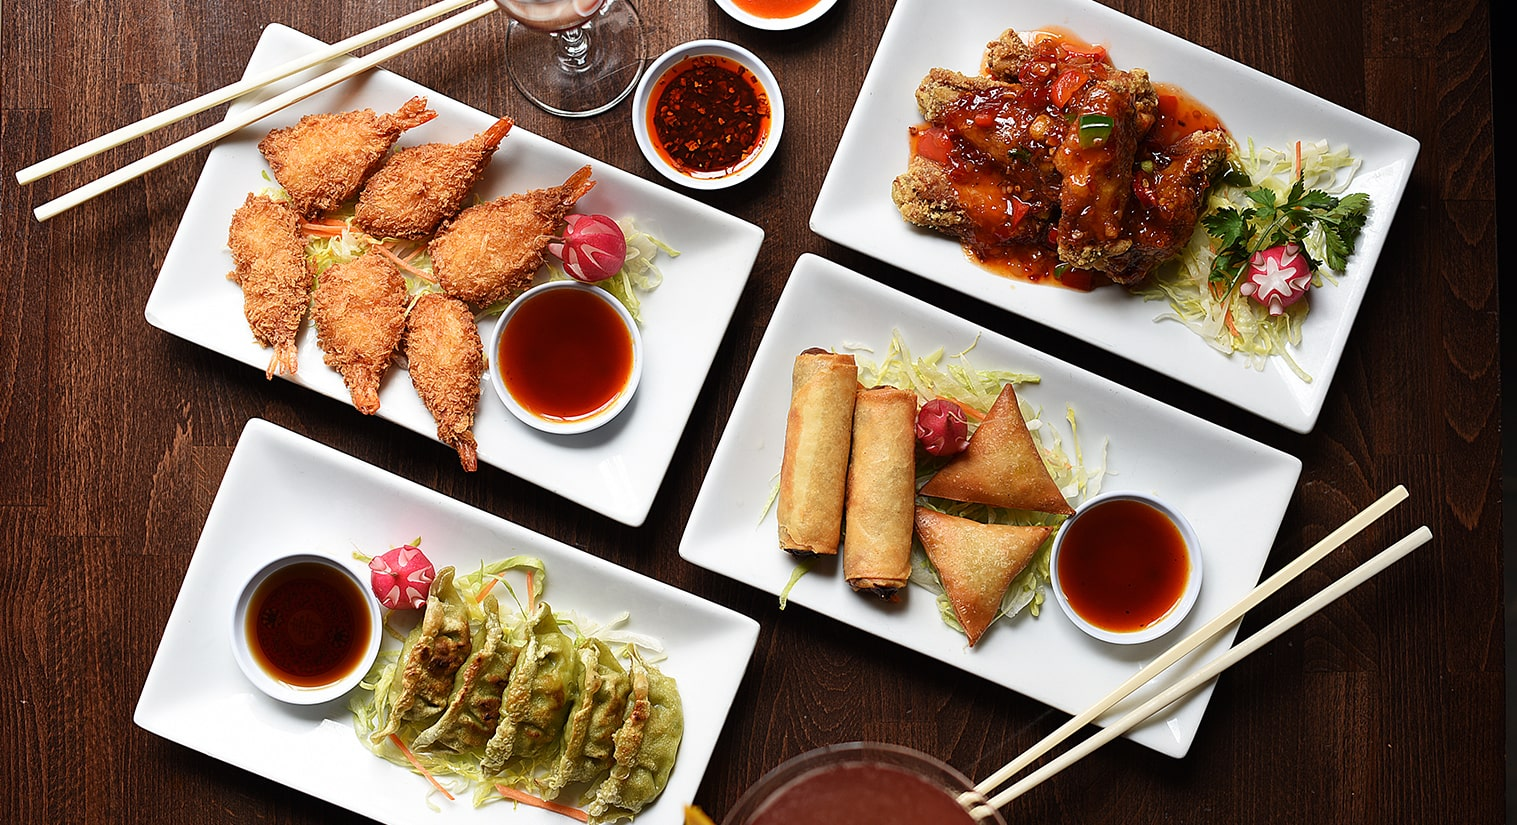 5 Reasons why Chinese food is great for business lunches